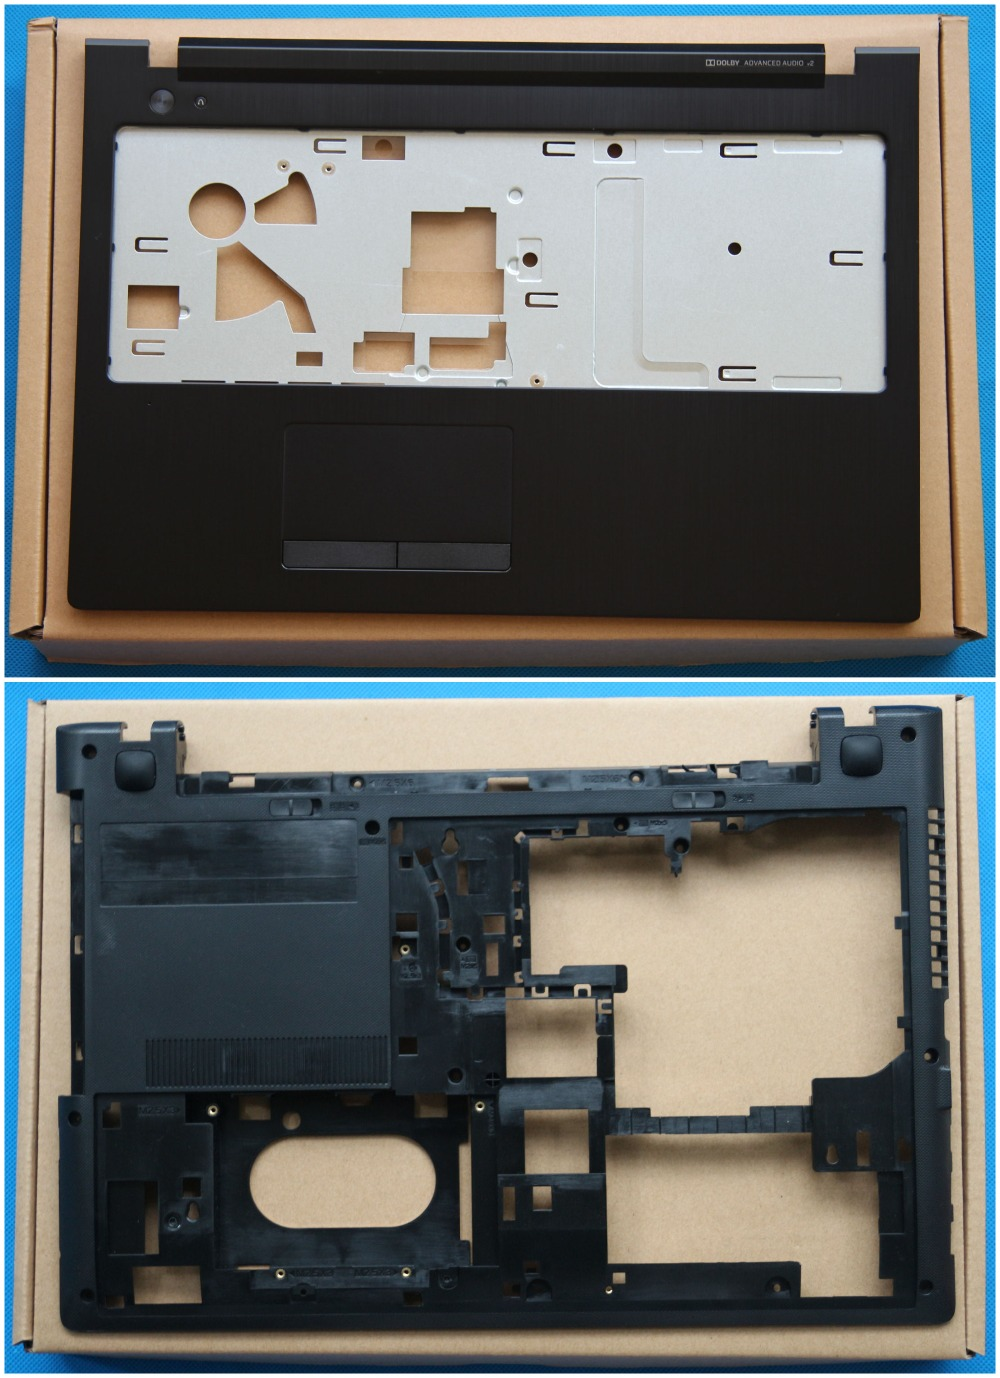 New Original Lenovo G500S G505S Palmrest Keyboard Bezel Upper Cover + Bottom Base Lower Case Black AP0YB000H10 AP0YB000I00 new lenovo g500s g505s ap0yb000h00 bottom base cover